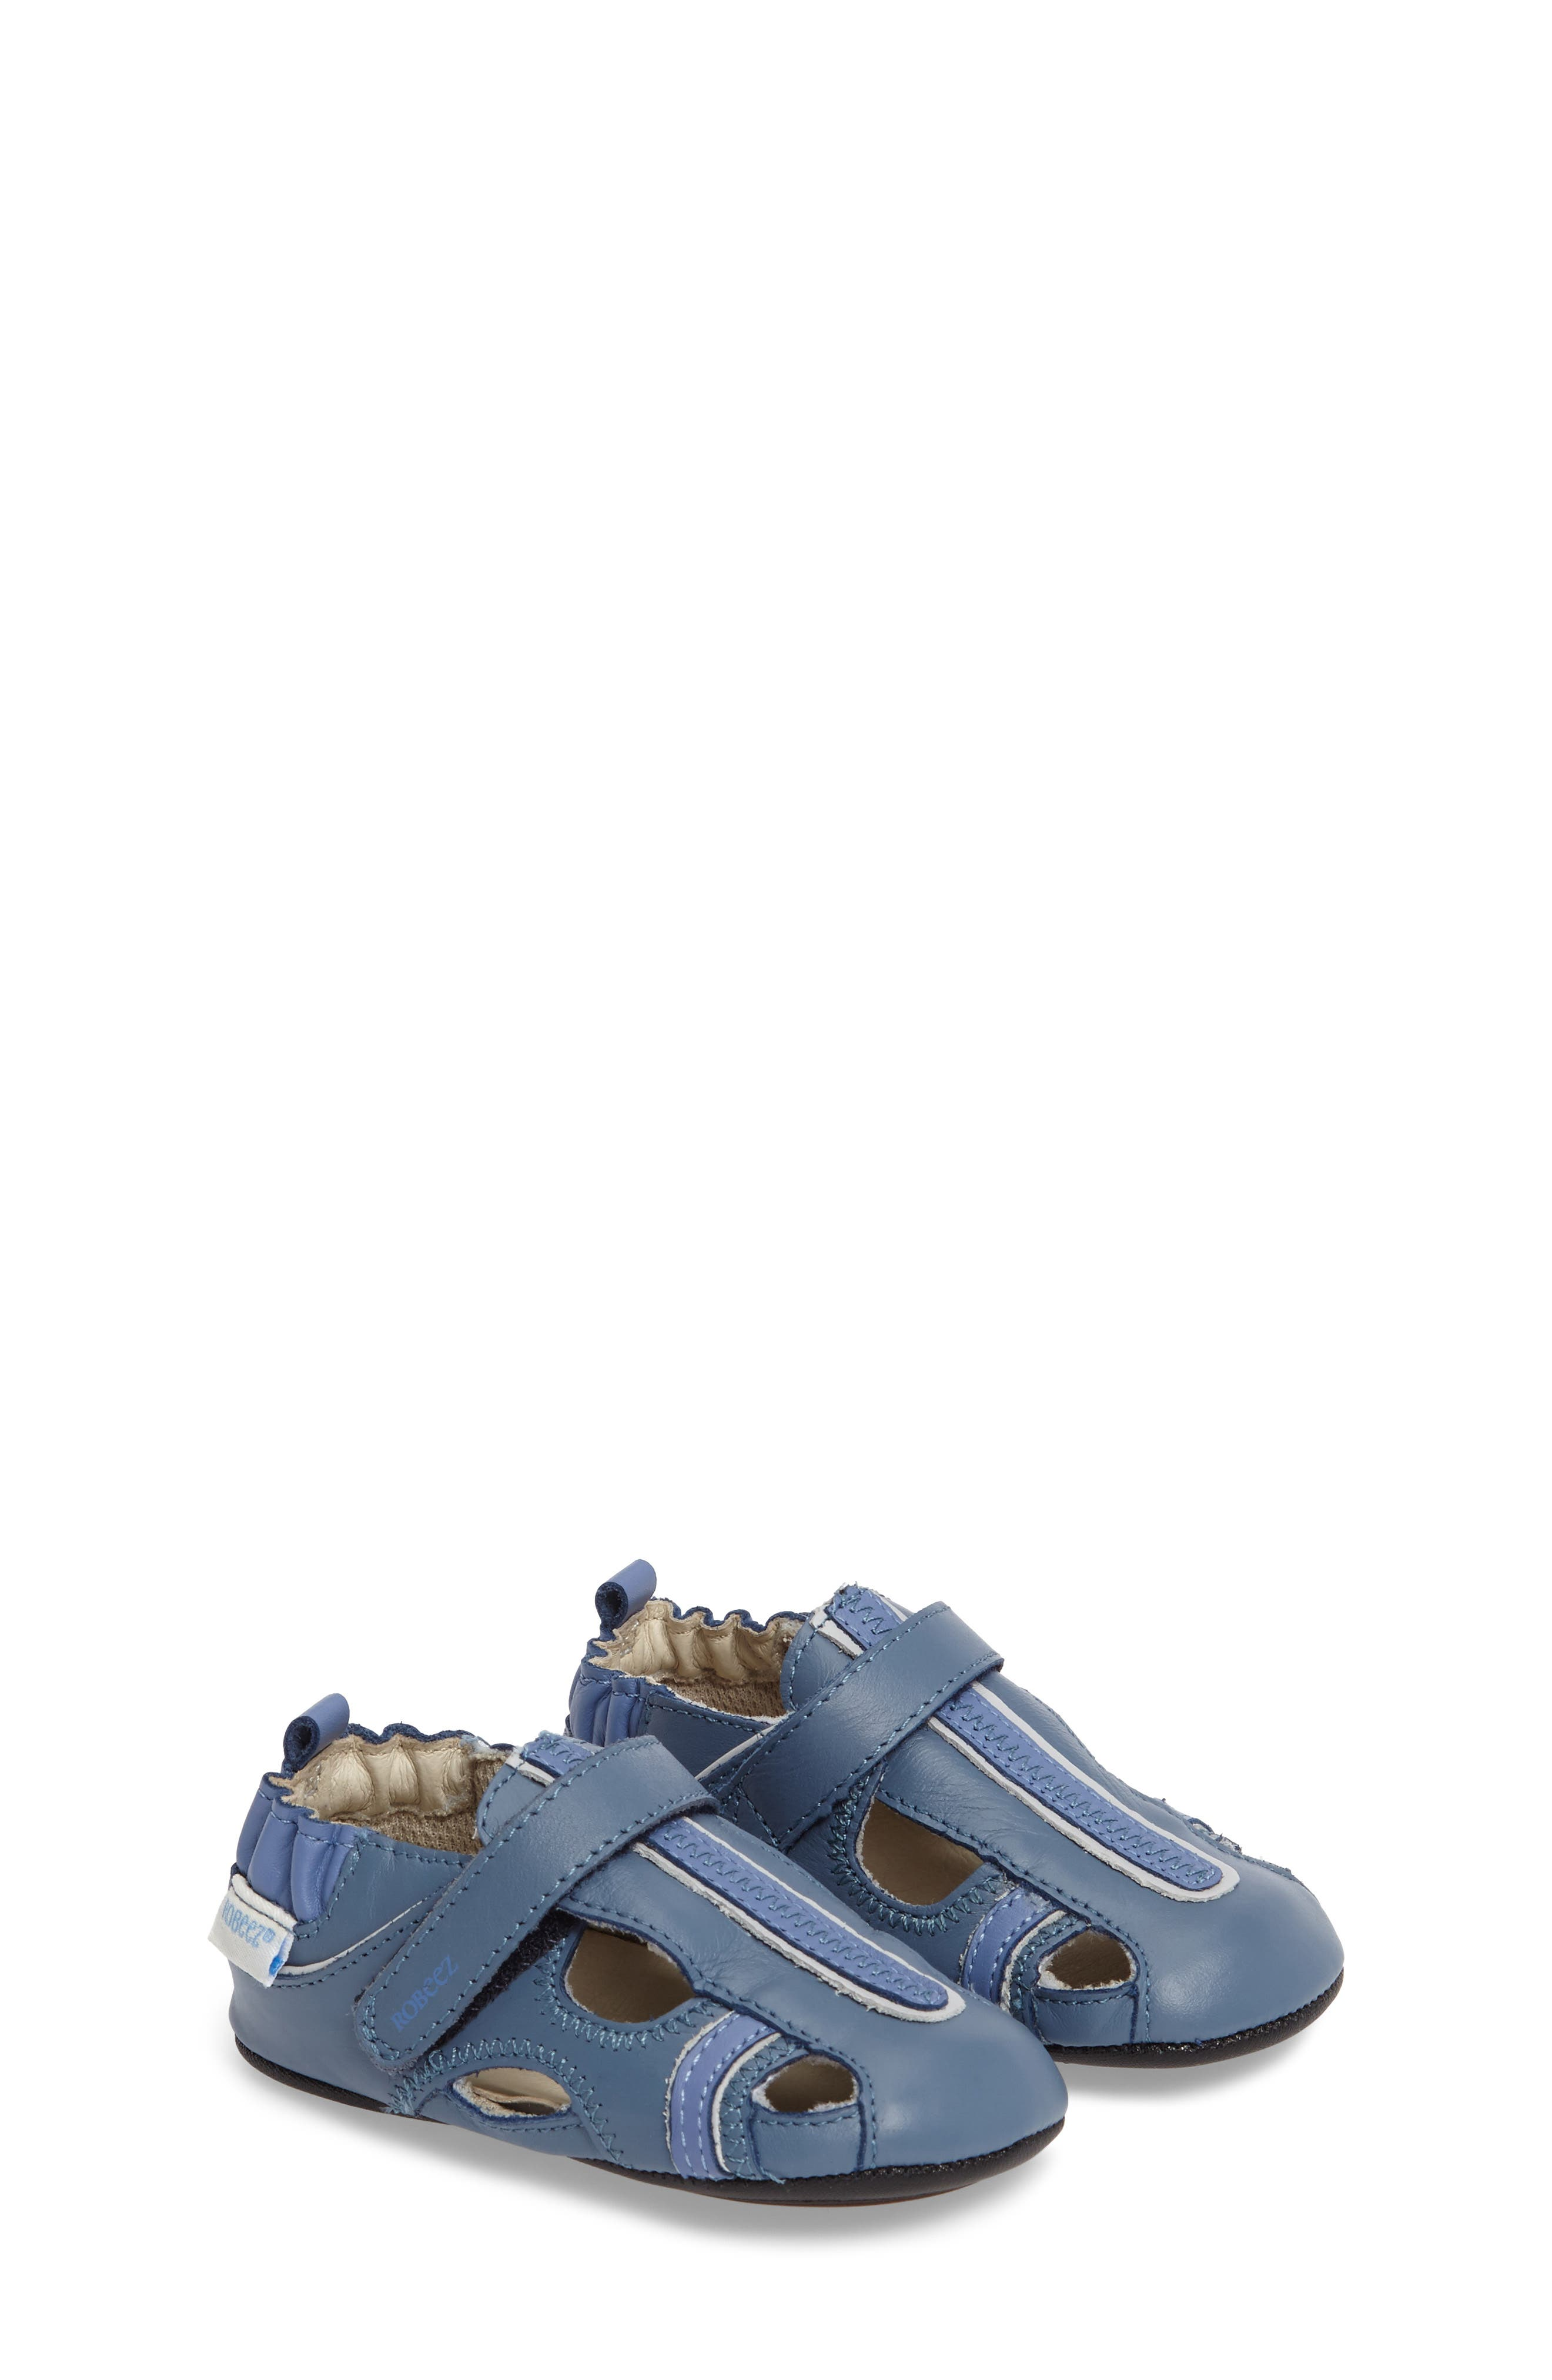 'Rugged Rob' Fisherman Sandal,                         Main,                         color, 402